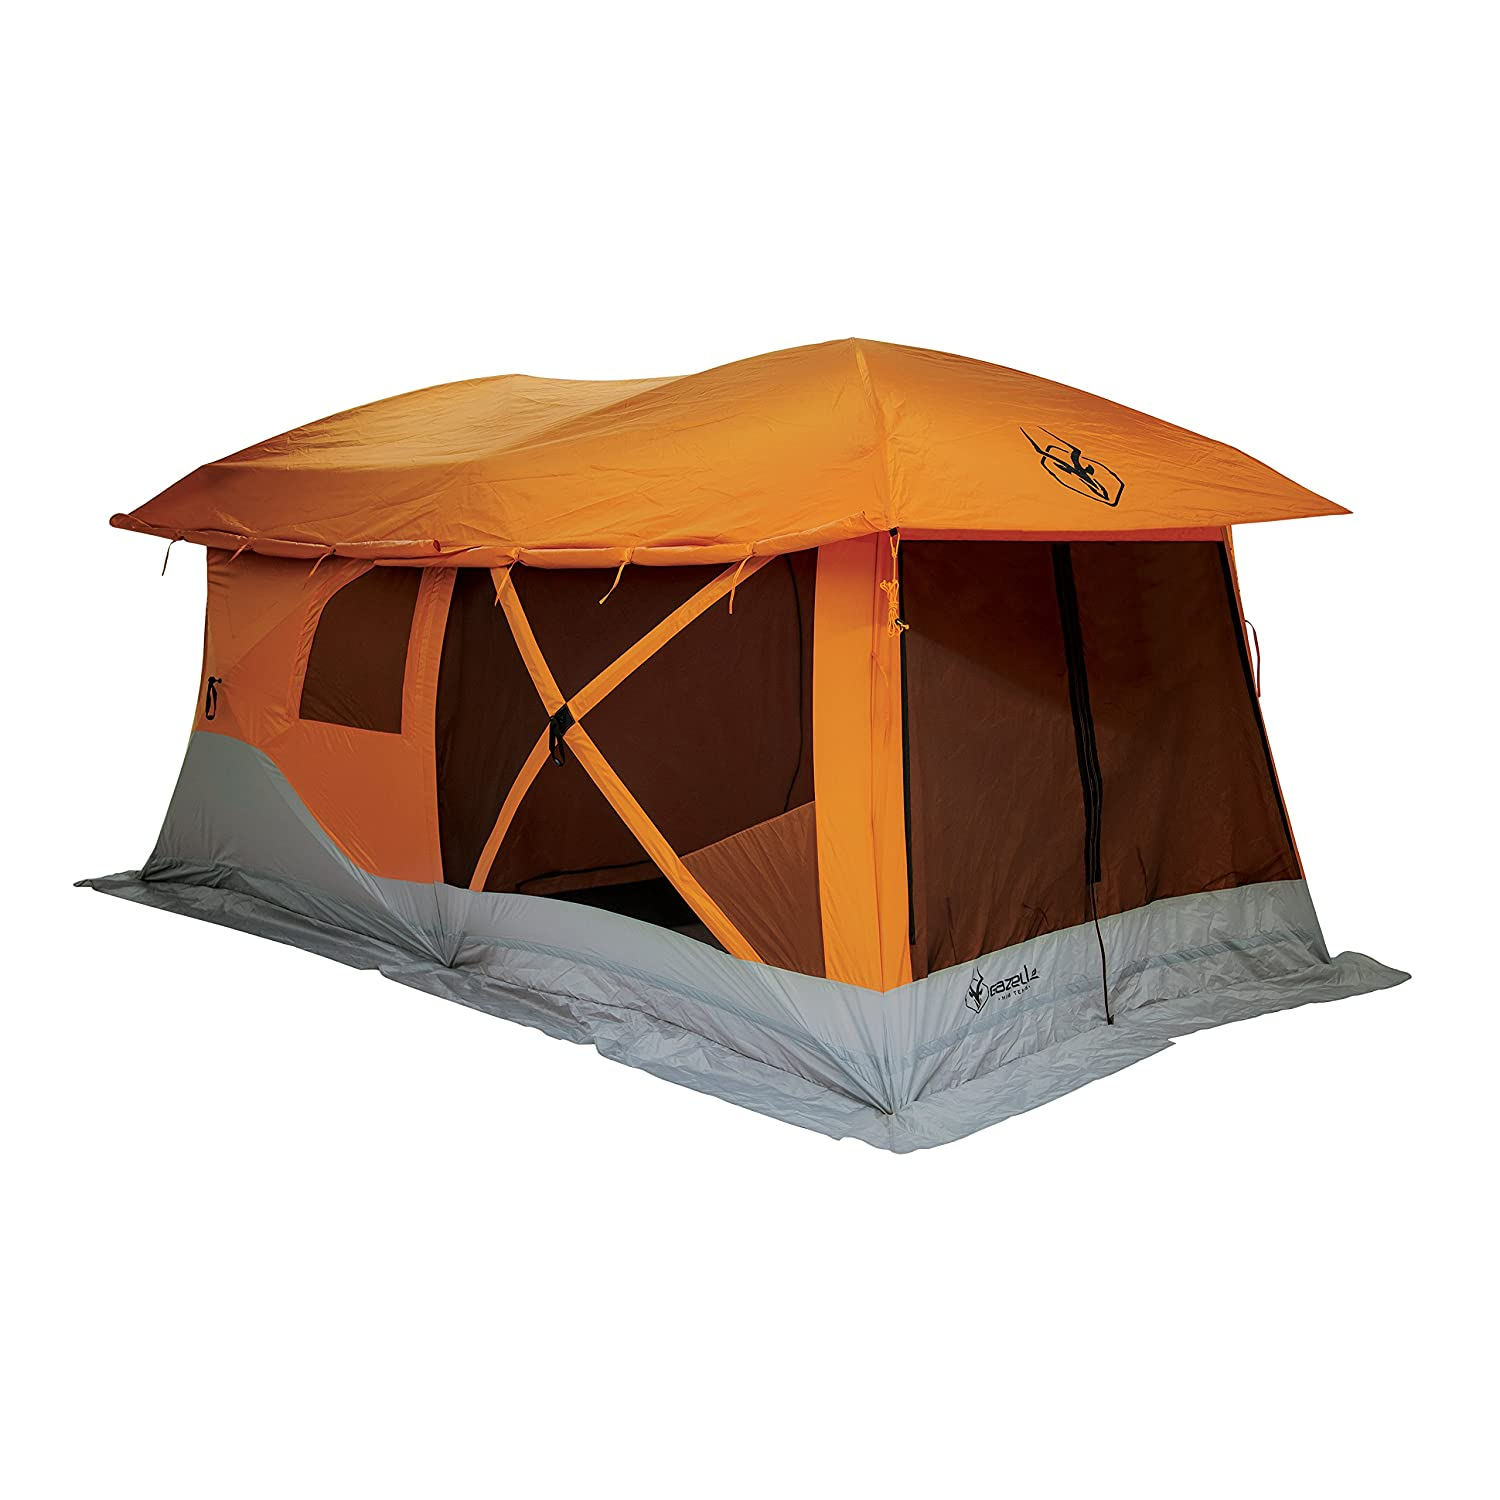 Plus Pop-Up Portable Camping Hub Overlanding Tent